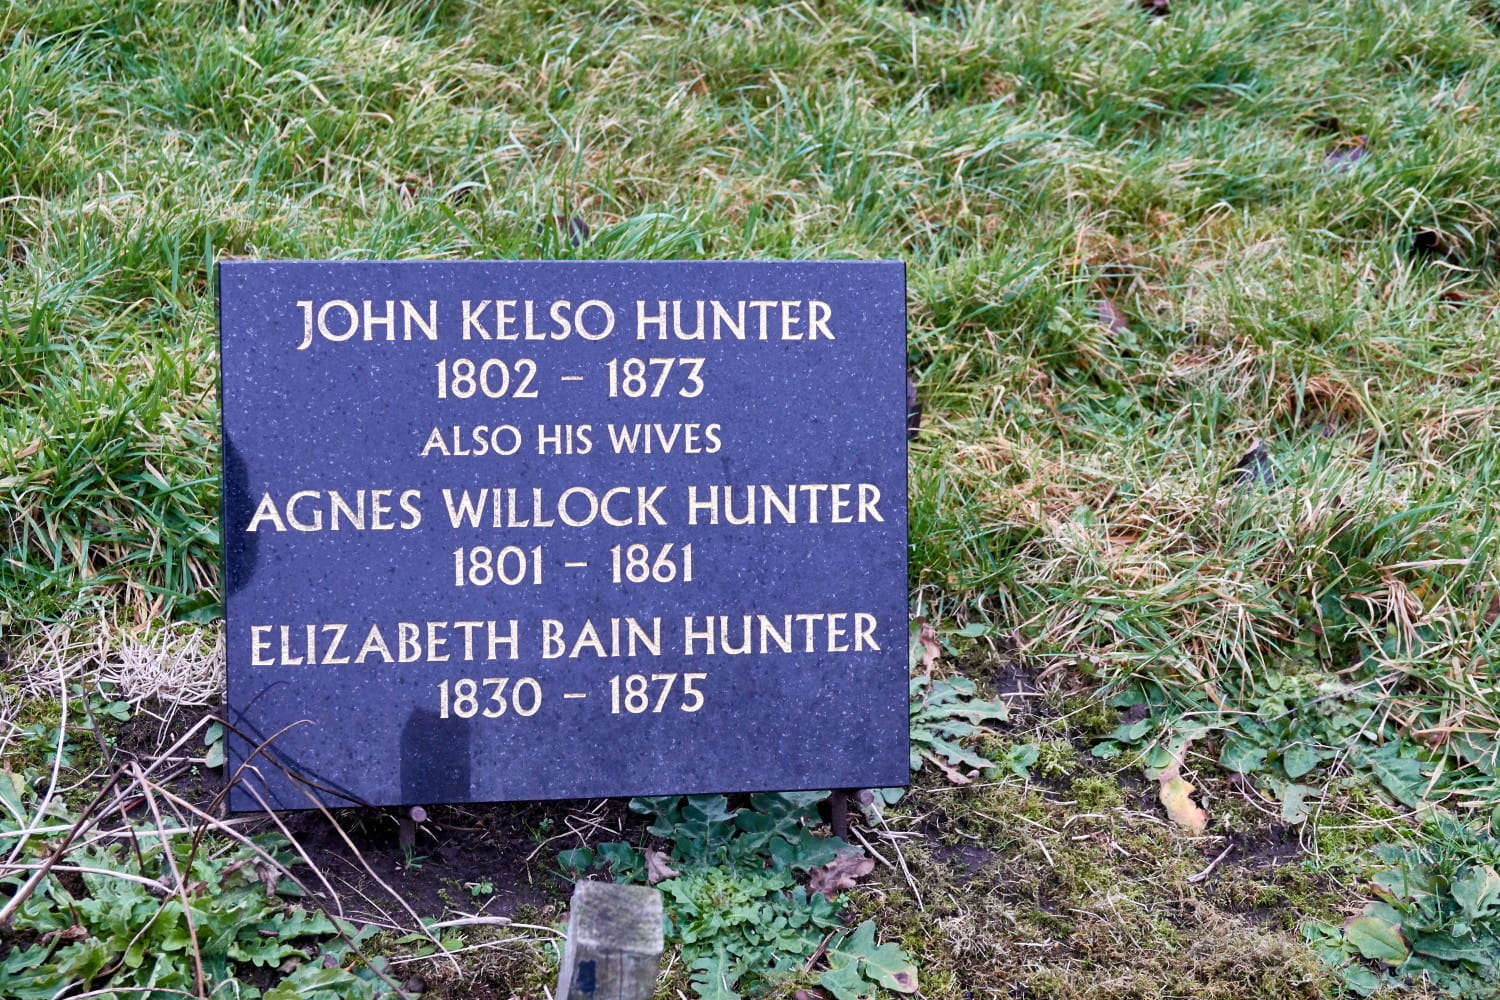 John Kelso Hunter - buried with his wives. Pictures: Bill Mackintosh